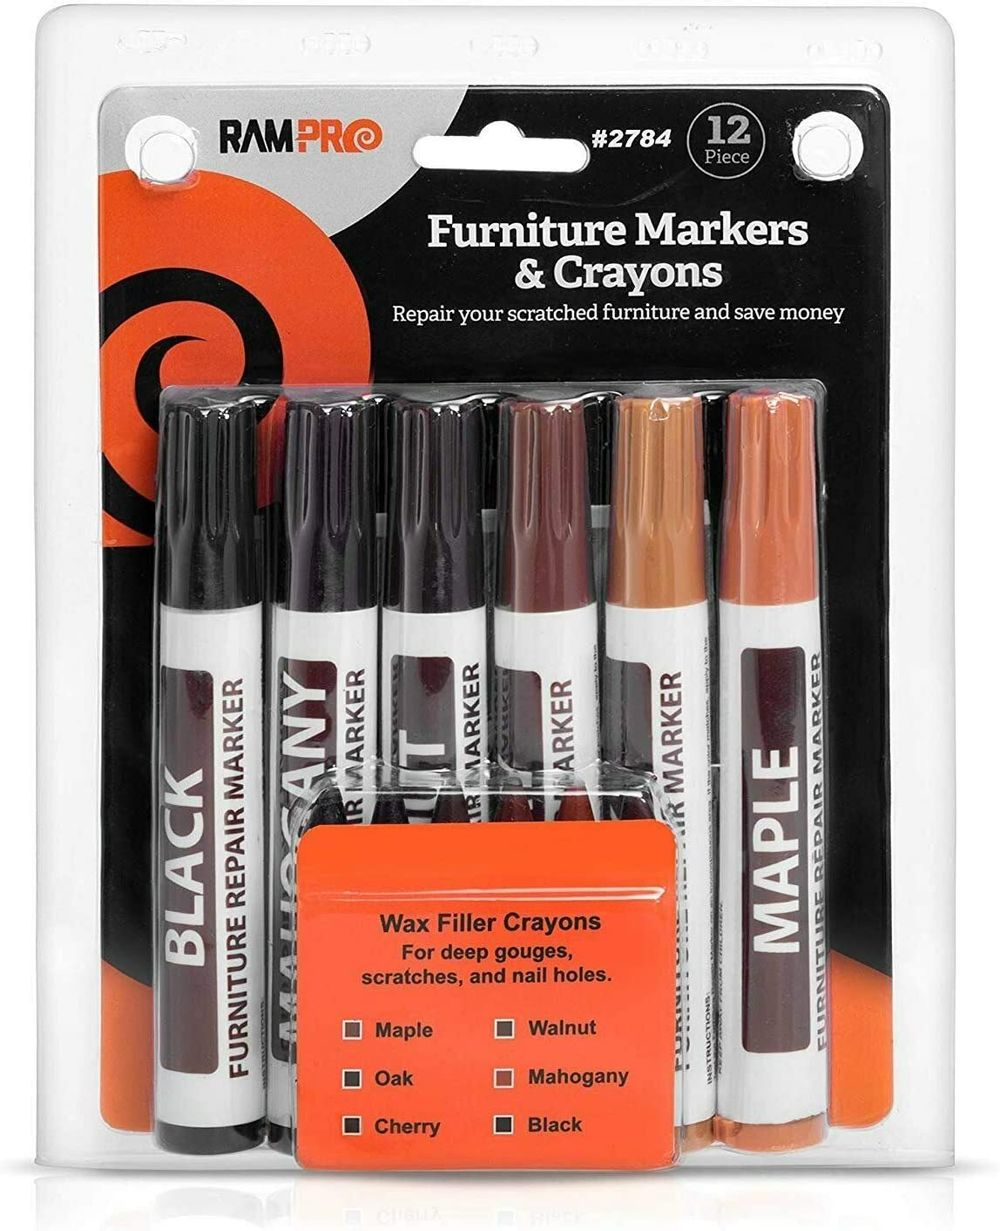 Ram-Pro Furniture Markers Touch Up Repair System - 12Pc Scratch Restore Kit - 6 Felt Tip Wood Markers, 6 Wax Stick Crayons   Colors: Maple, Oak, Cherry, Walnut, Mahogany, Black